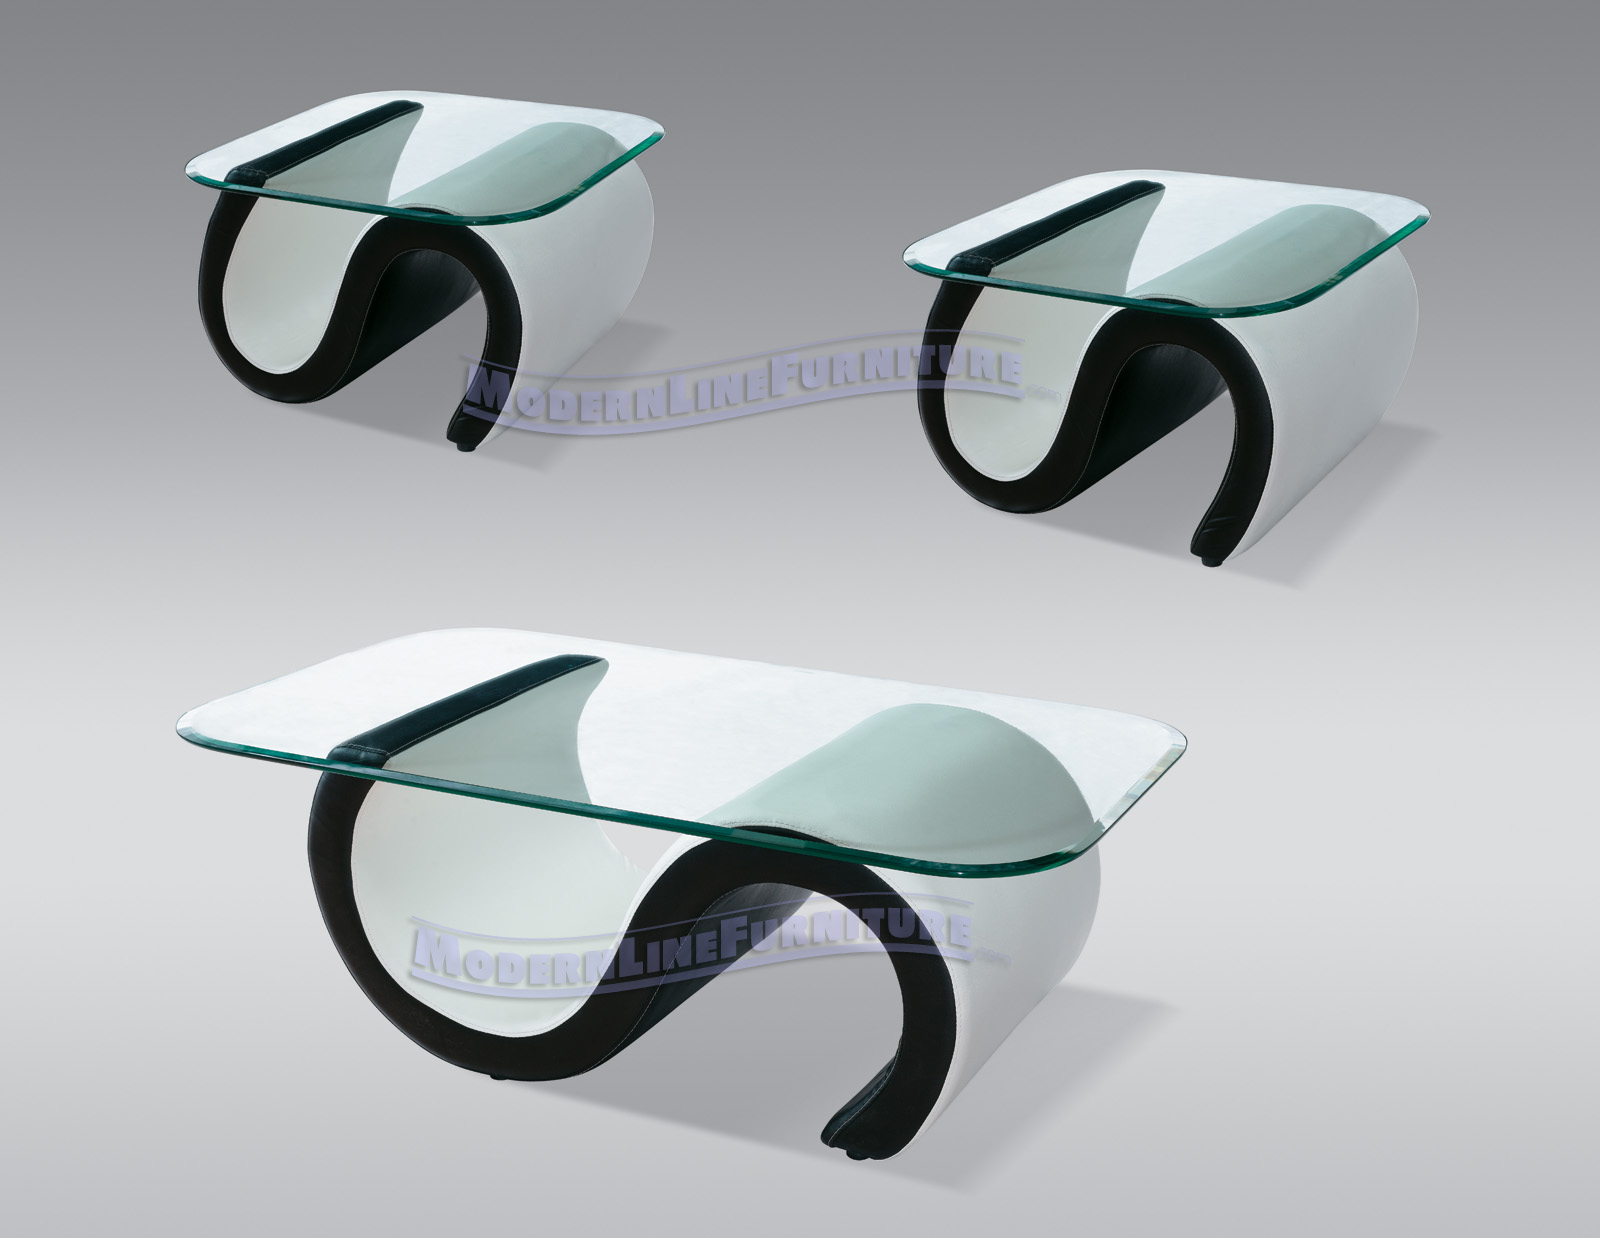 Ultra modern end tables - Modern Line Furniture Commercial Furniture Custom Made Furniture Seating Collection Coffee Side Tables Model 69 Contemporary White Black